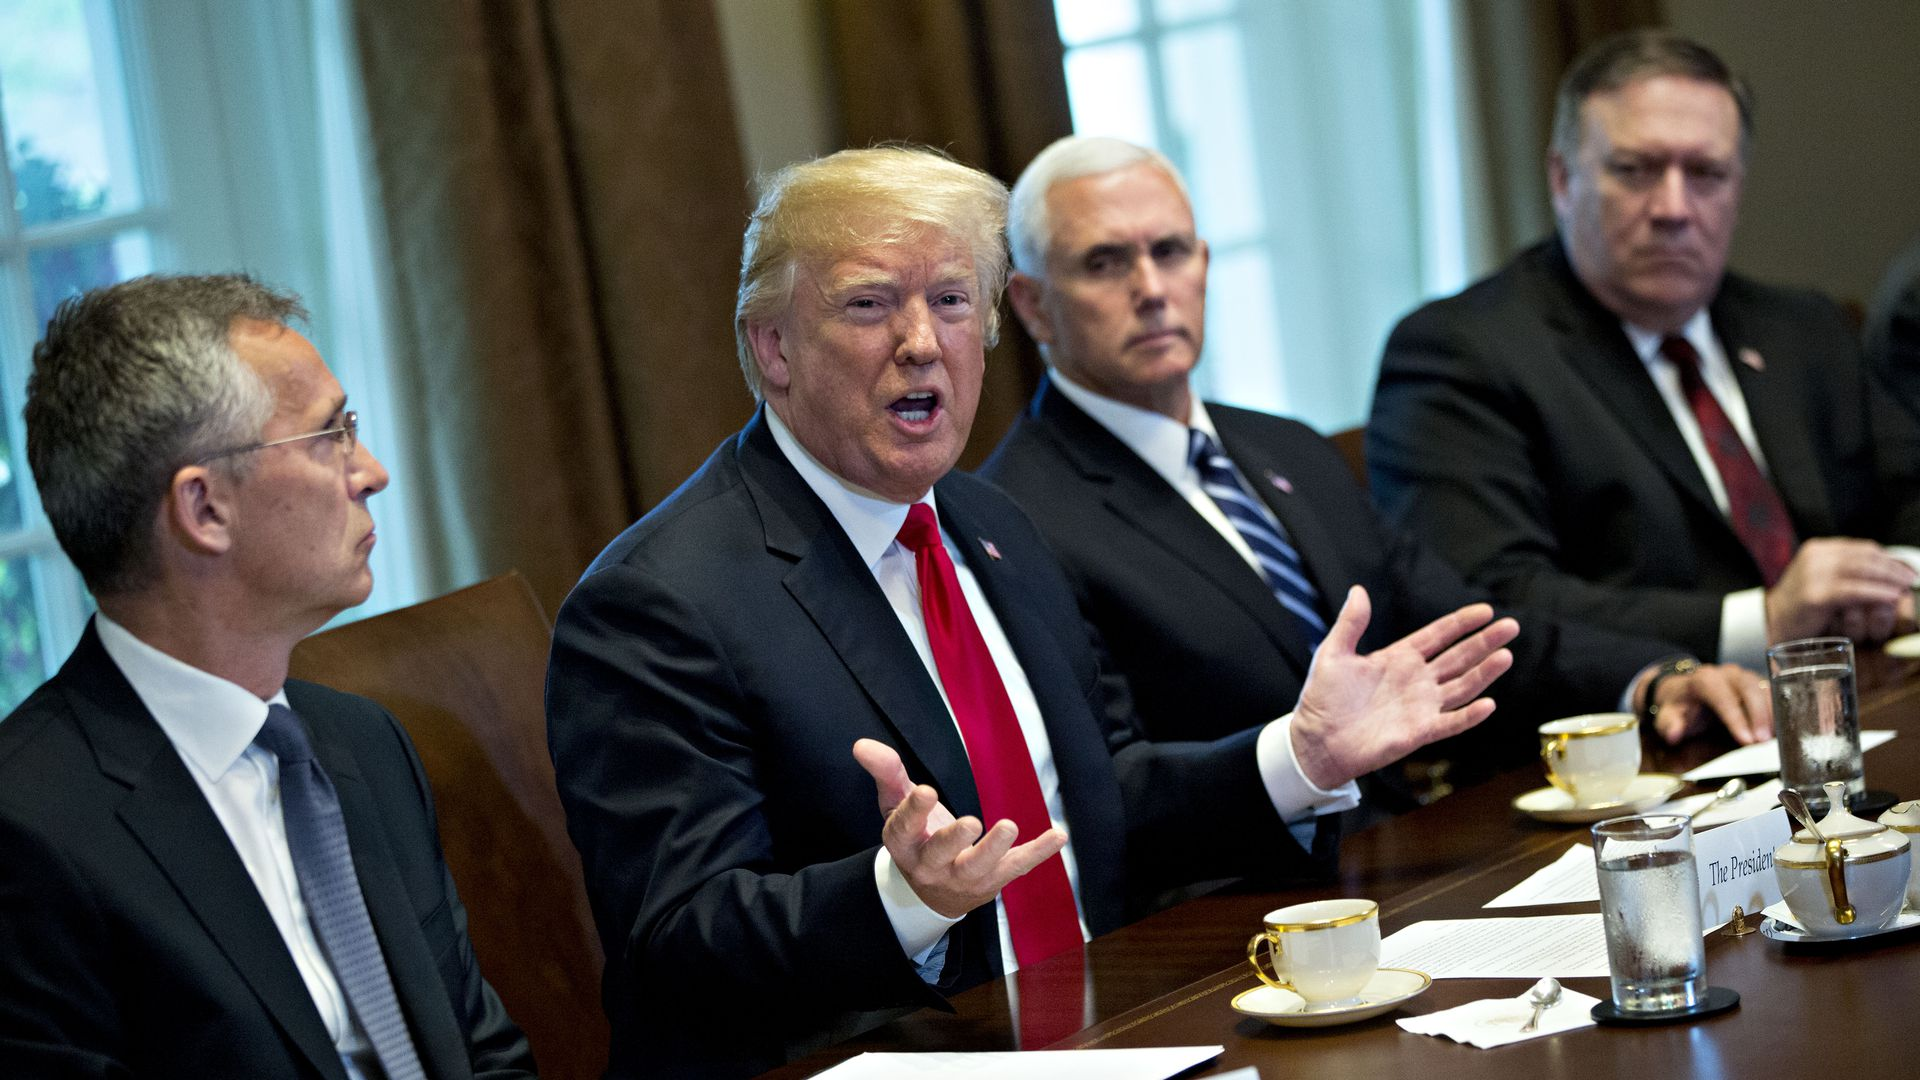 U.S. President Donald Trump speaks as Mike Pence, Mike Pompeo, and Jens Stoltenberg, secretary general of NATO, listen during a meeting in the Cabinet Room of the White House on May 17, 2018.